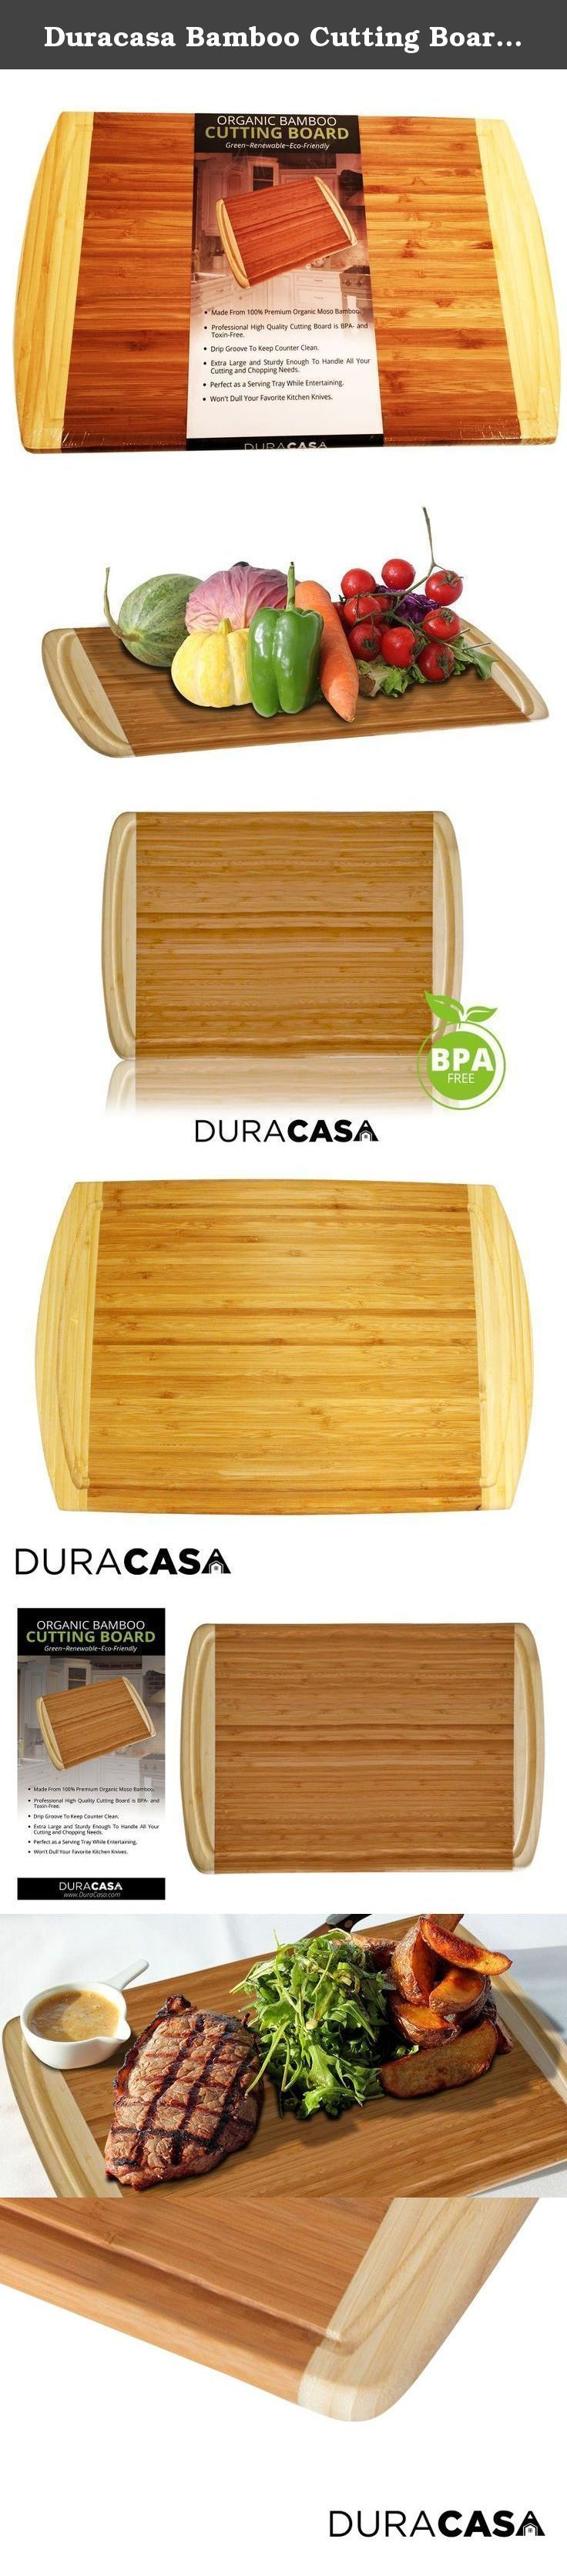 """Duracasa Bamboo Cutting Board 